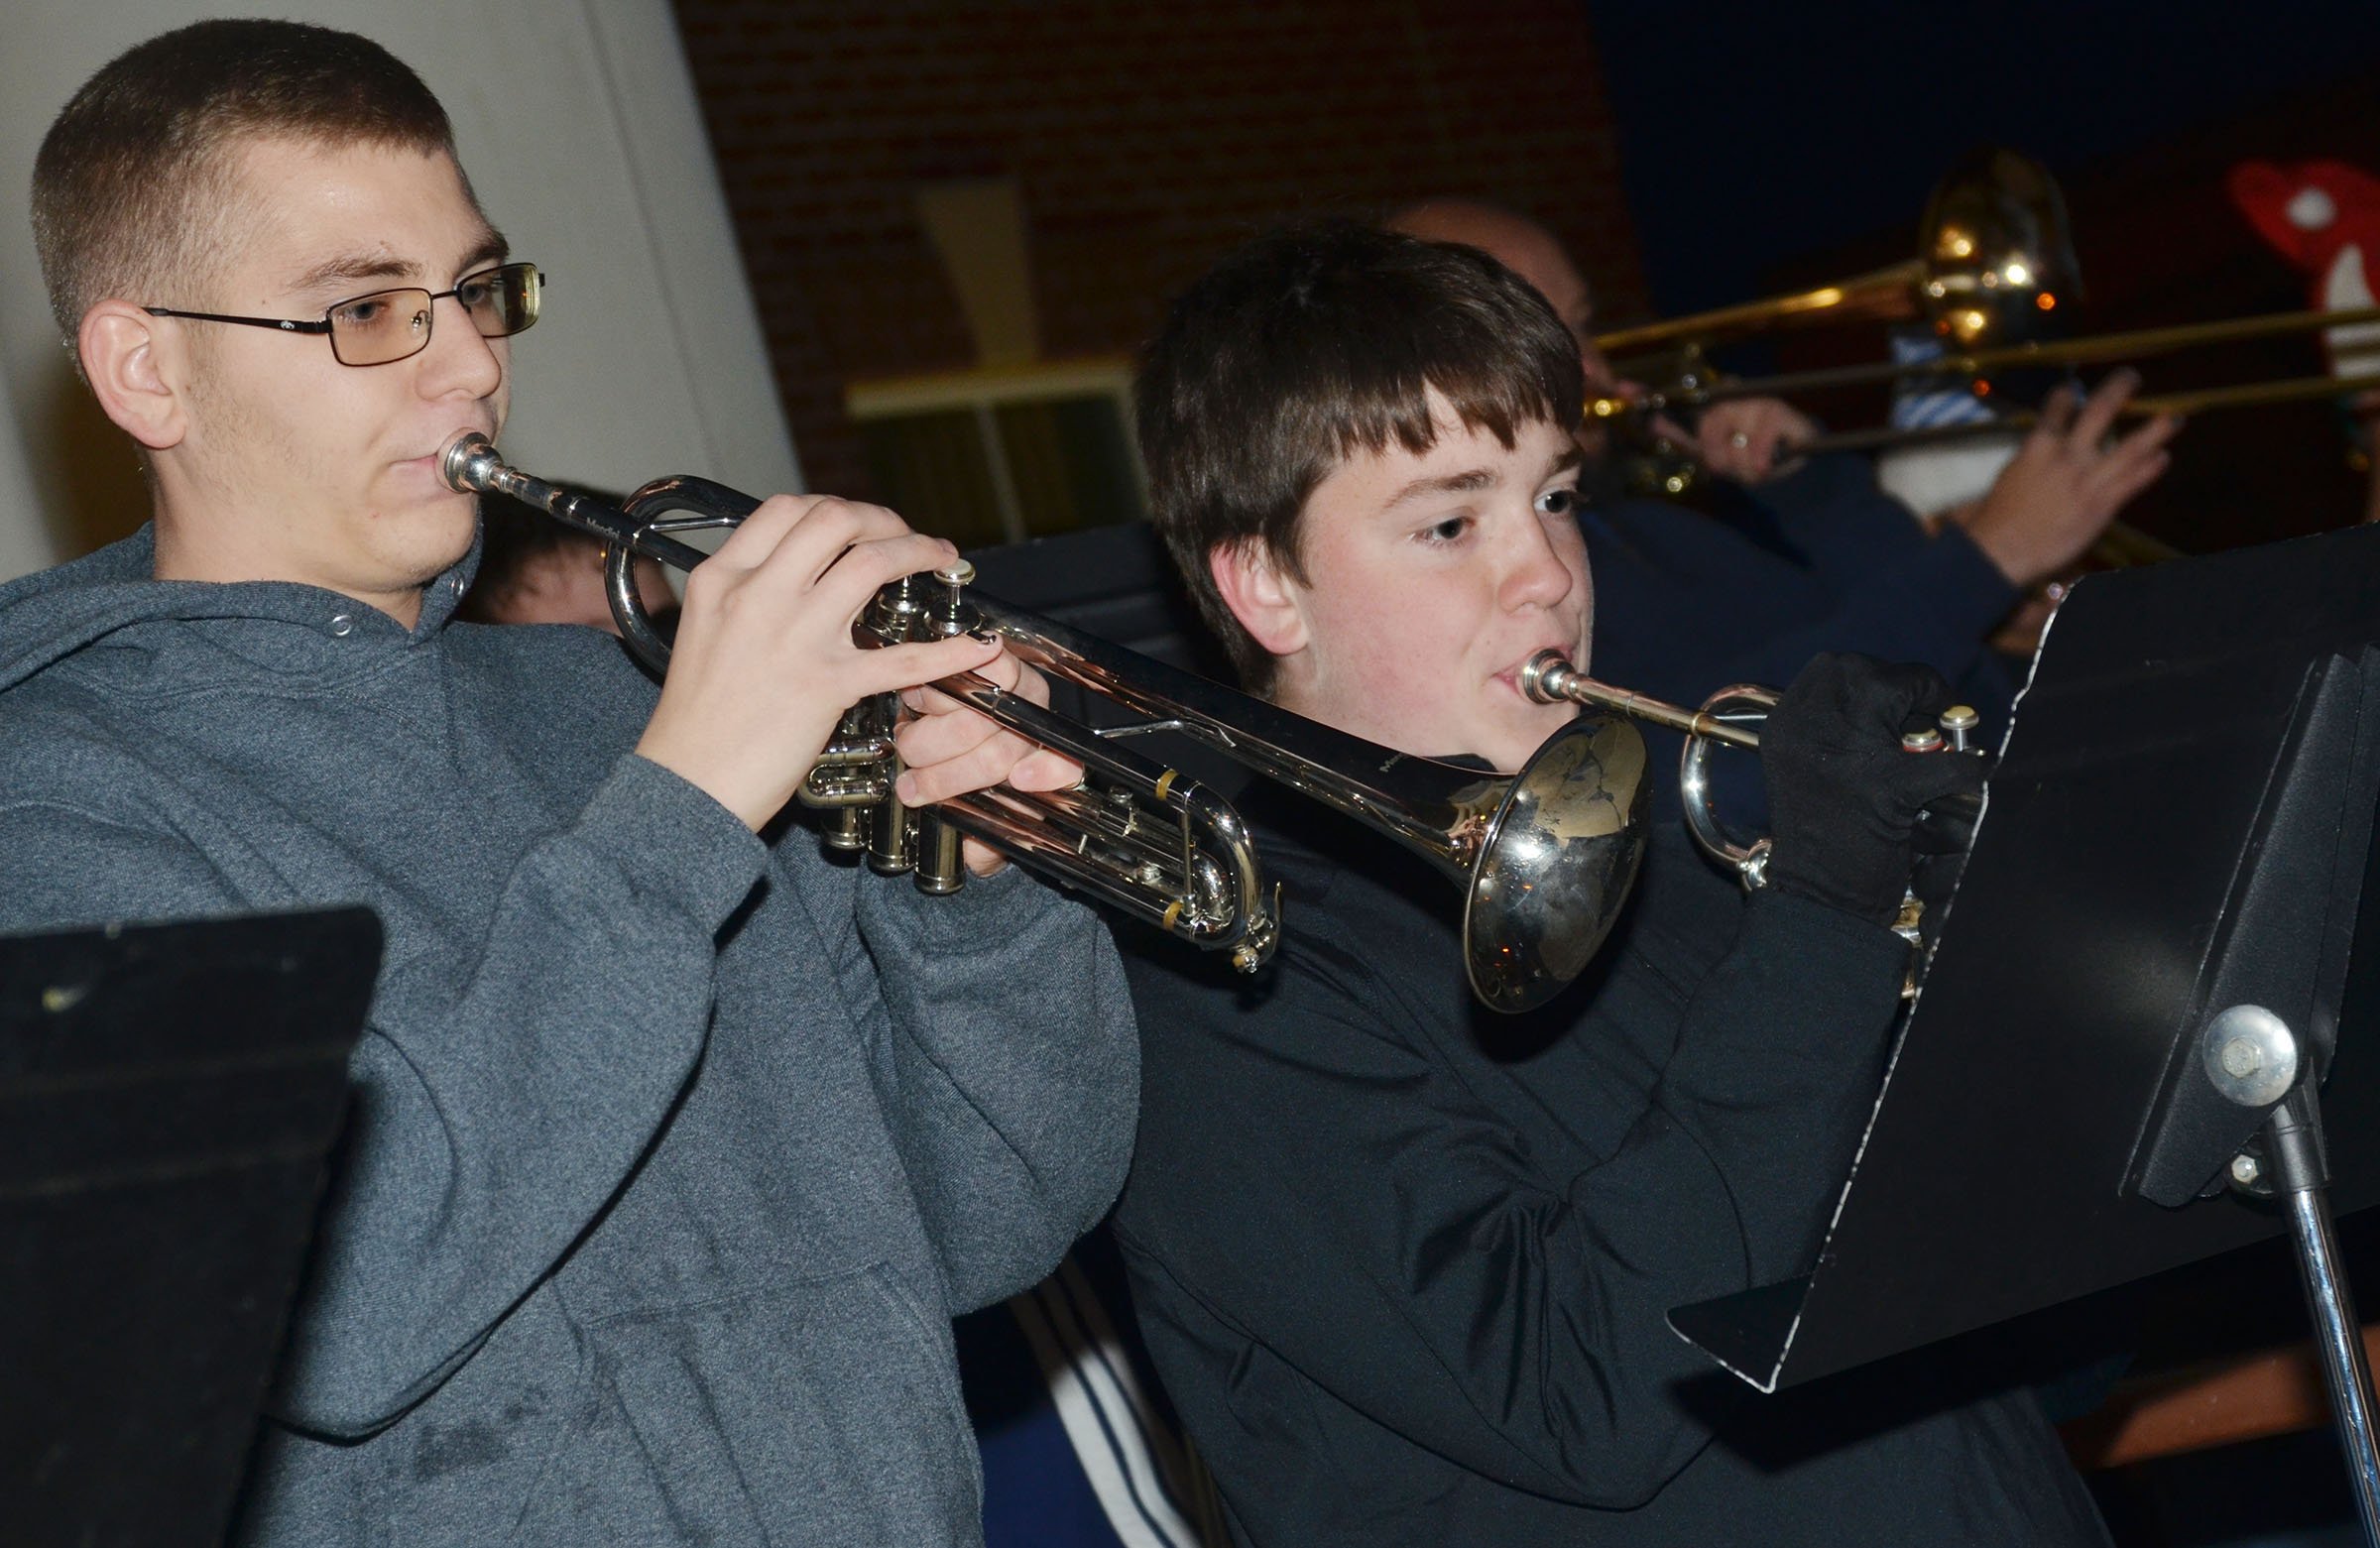 CHS sophomore Brandon Greer, at left, and freshmen Grant Rinehart play trumpet.